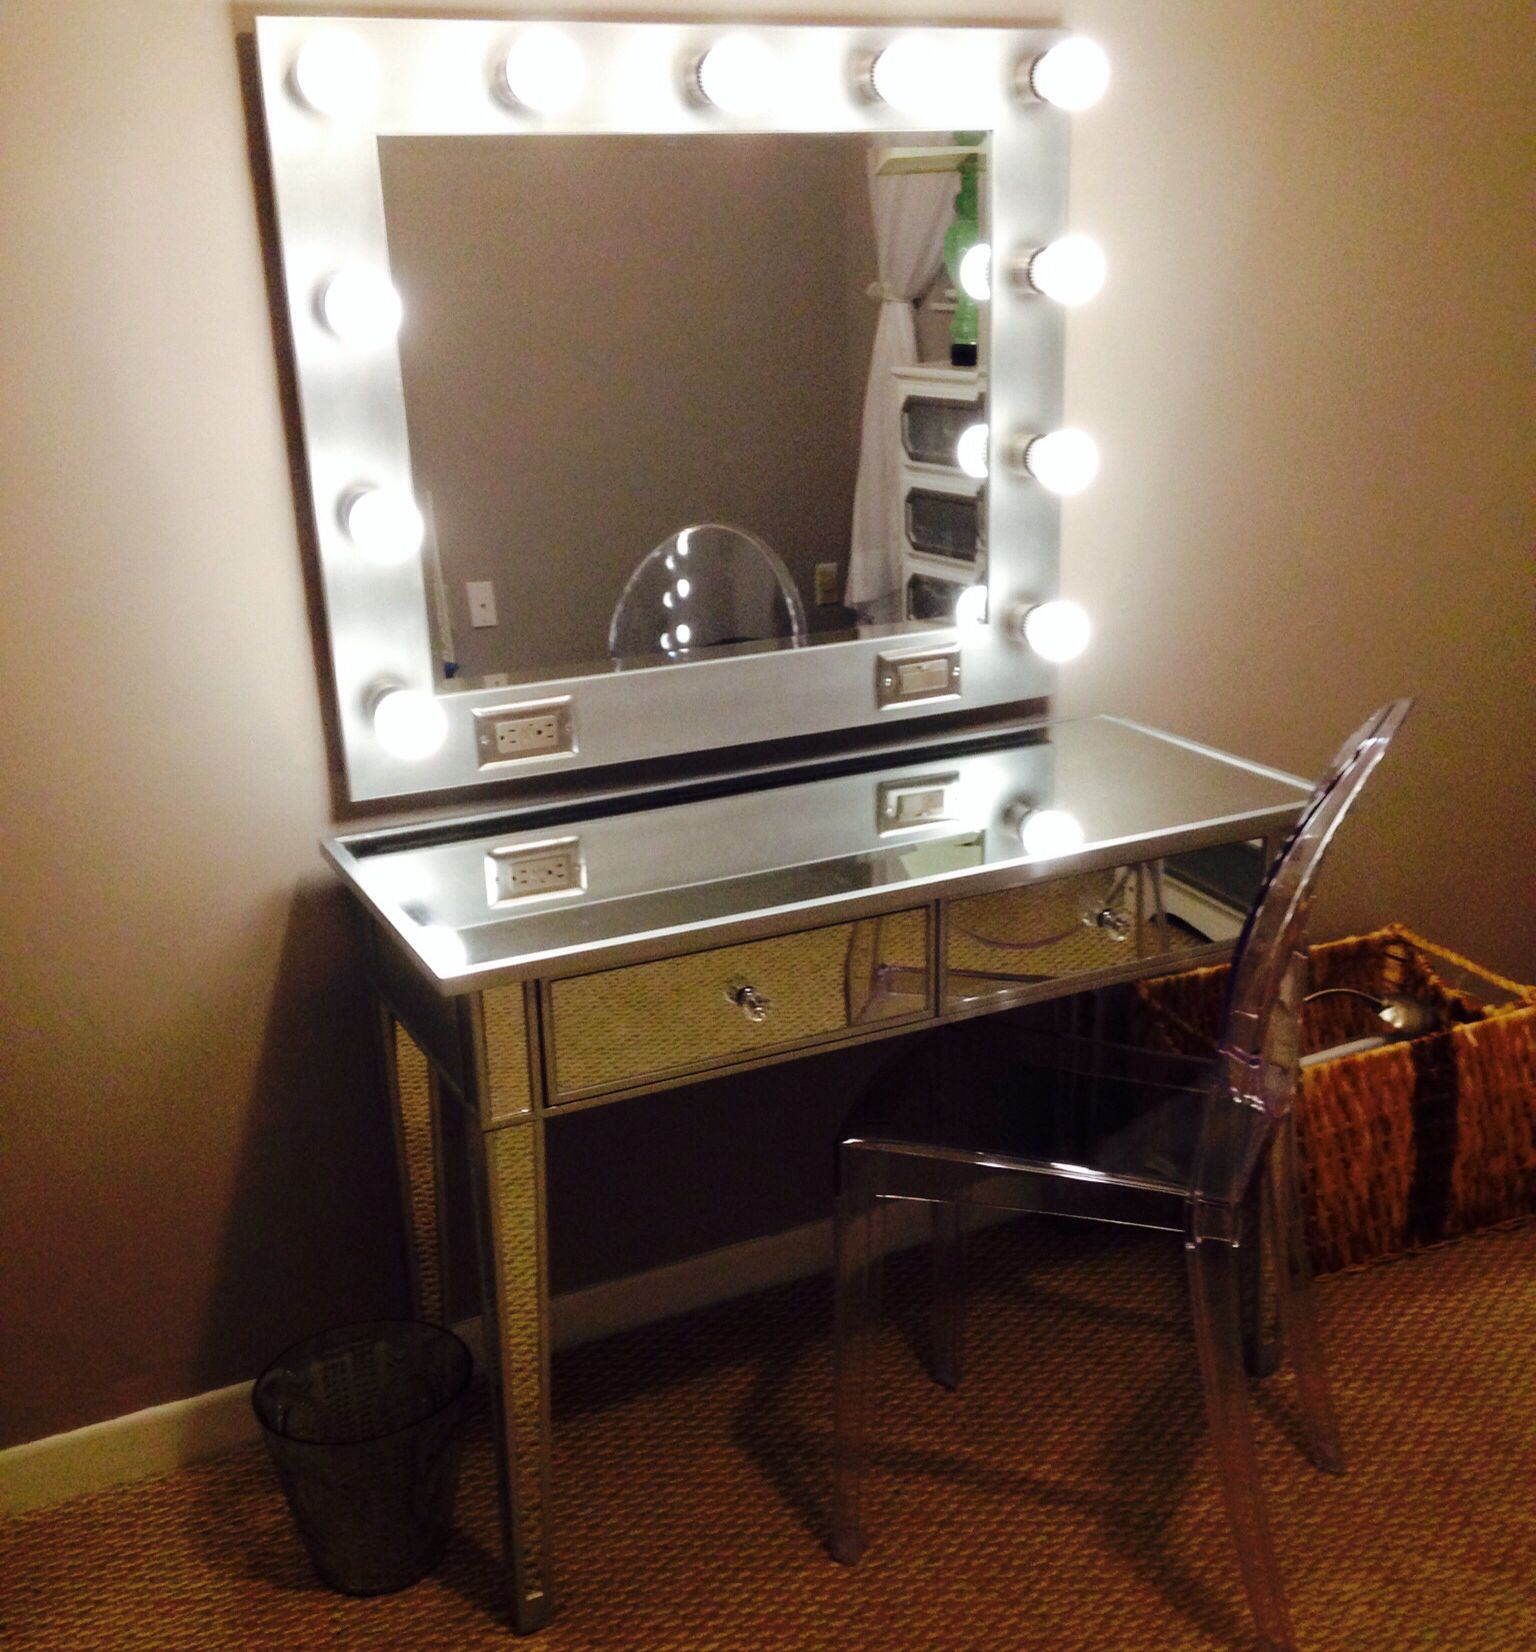 My Diy Vanity Mirror After With Led Lights For A Lot Less Than What Pros Are Ing Their S Designed And Built Me By Husband